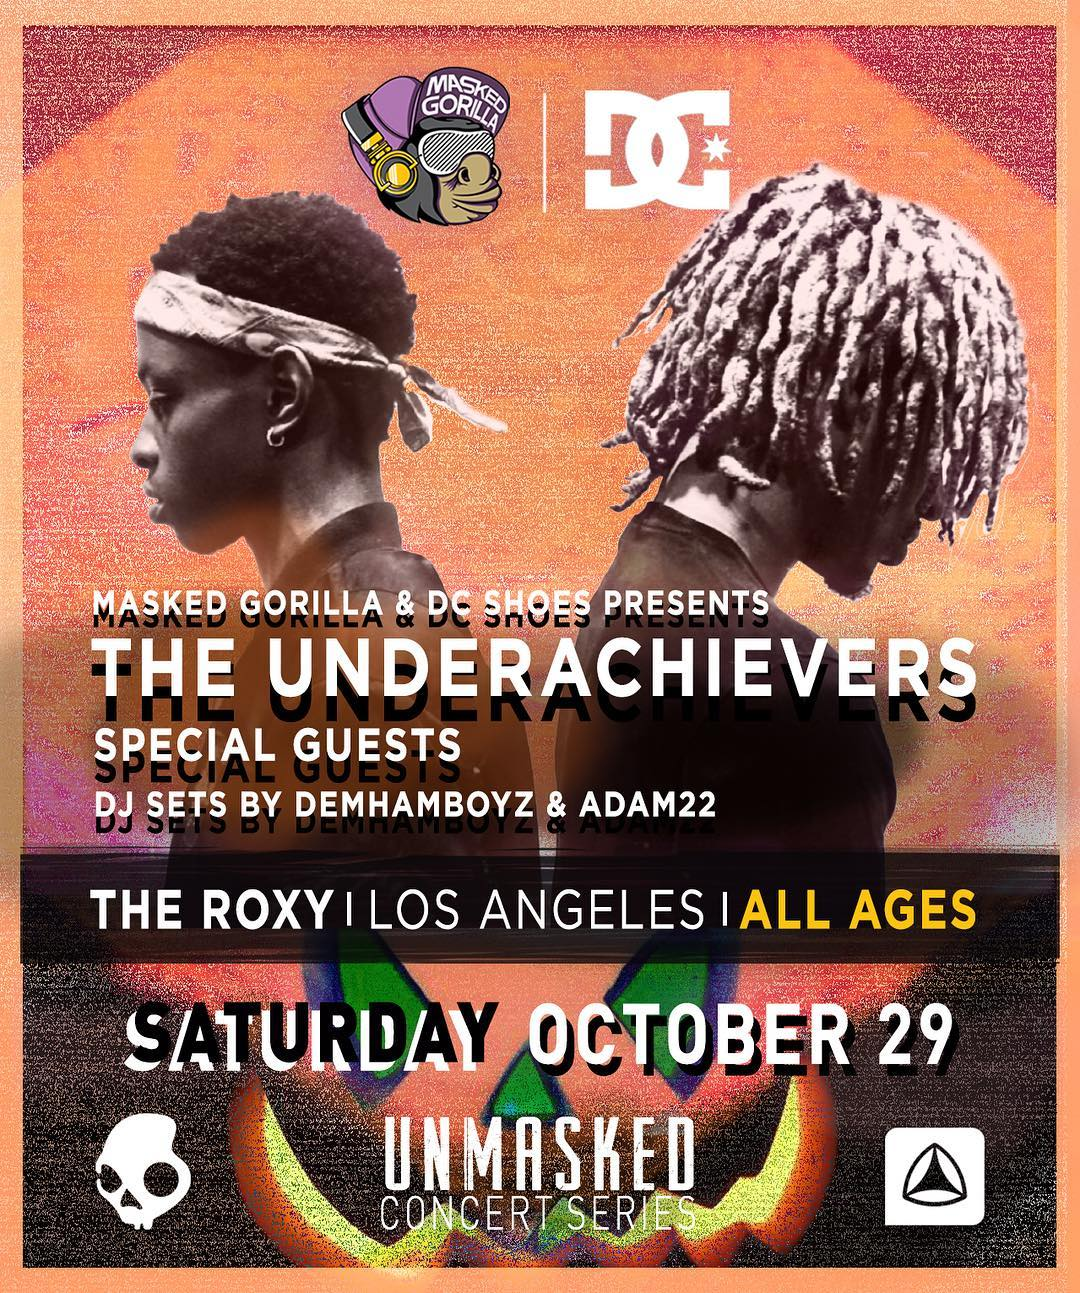 After 4 sold out concerts in 4 months, @MaskedGorilla & DC is ending our @unmaskedla Concert Series on Saturday, October 29th with one our biggest shows ever... @theunderachievers! Get your tickets now at: UNMASKED.la. #dcshoes #maskedgorilla...